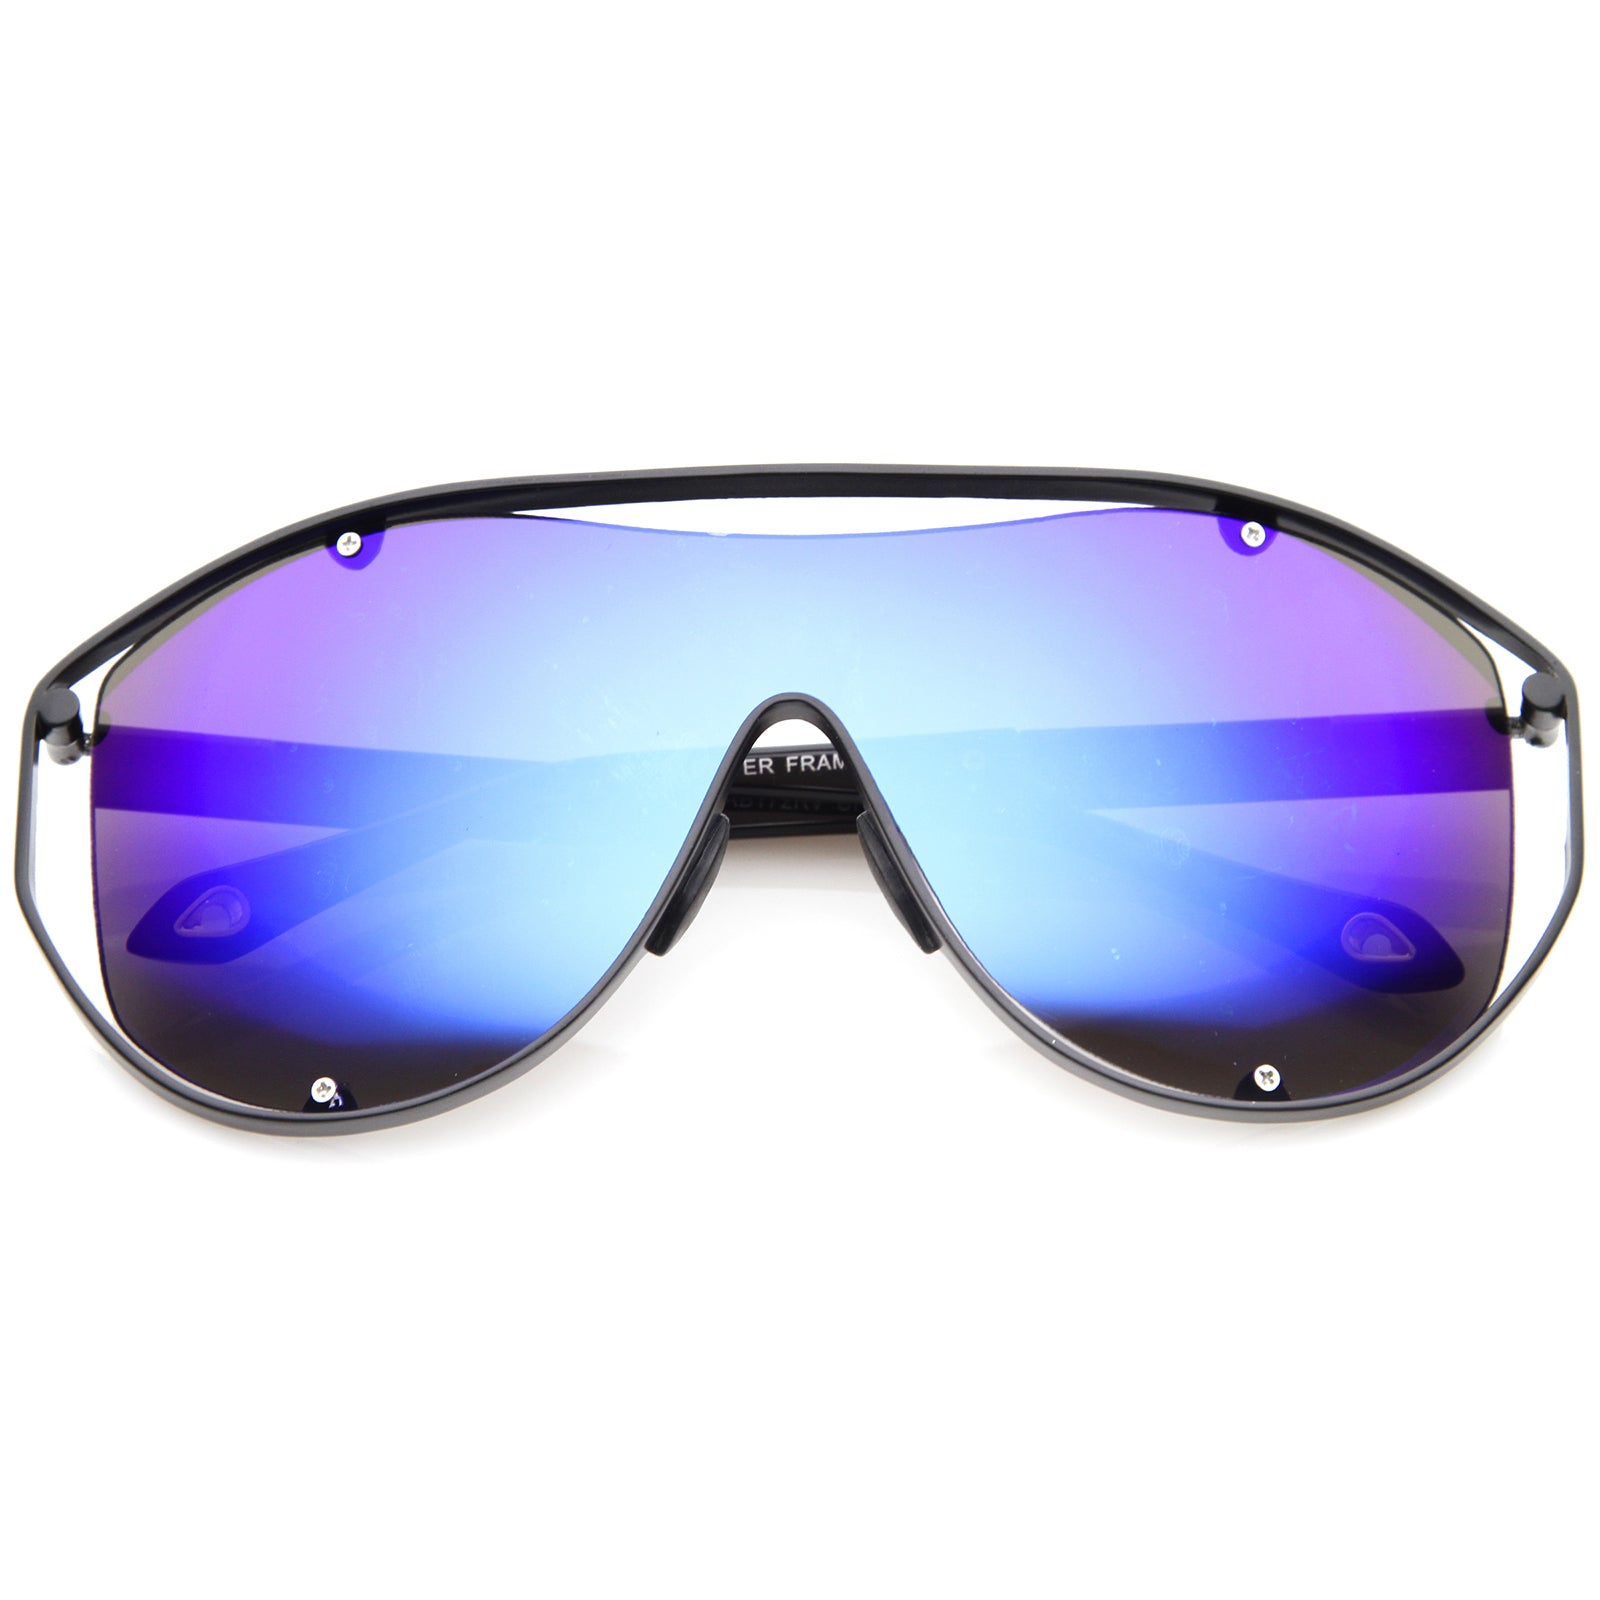 Modern Fashion Metal Frame Inner Rimless Mirror Lens Shield Sunglasses - sunglass.la - 9